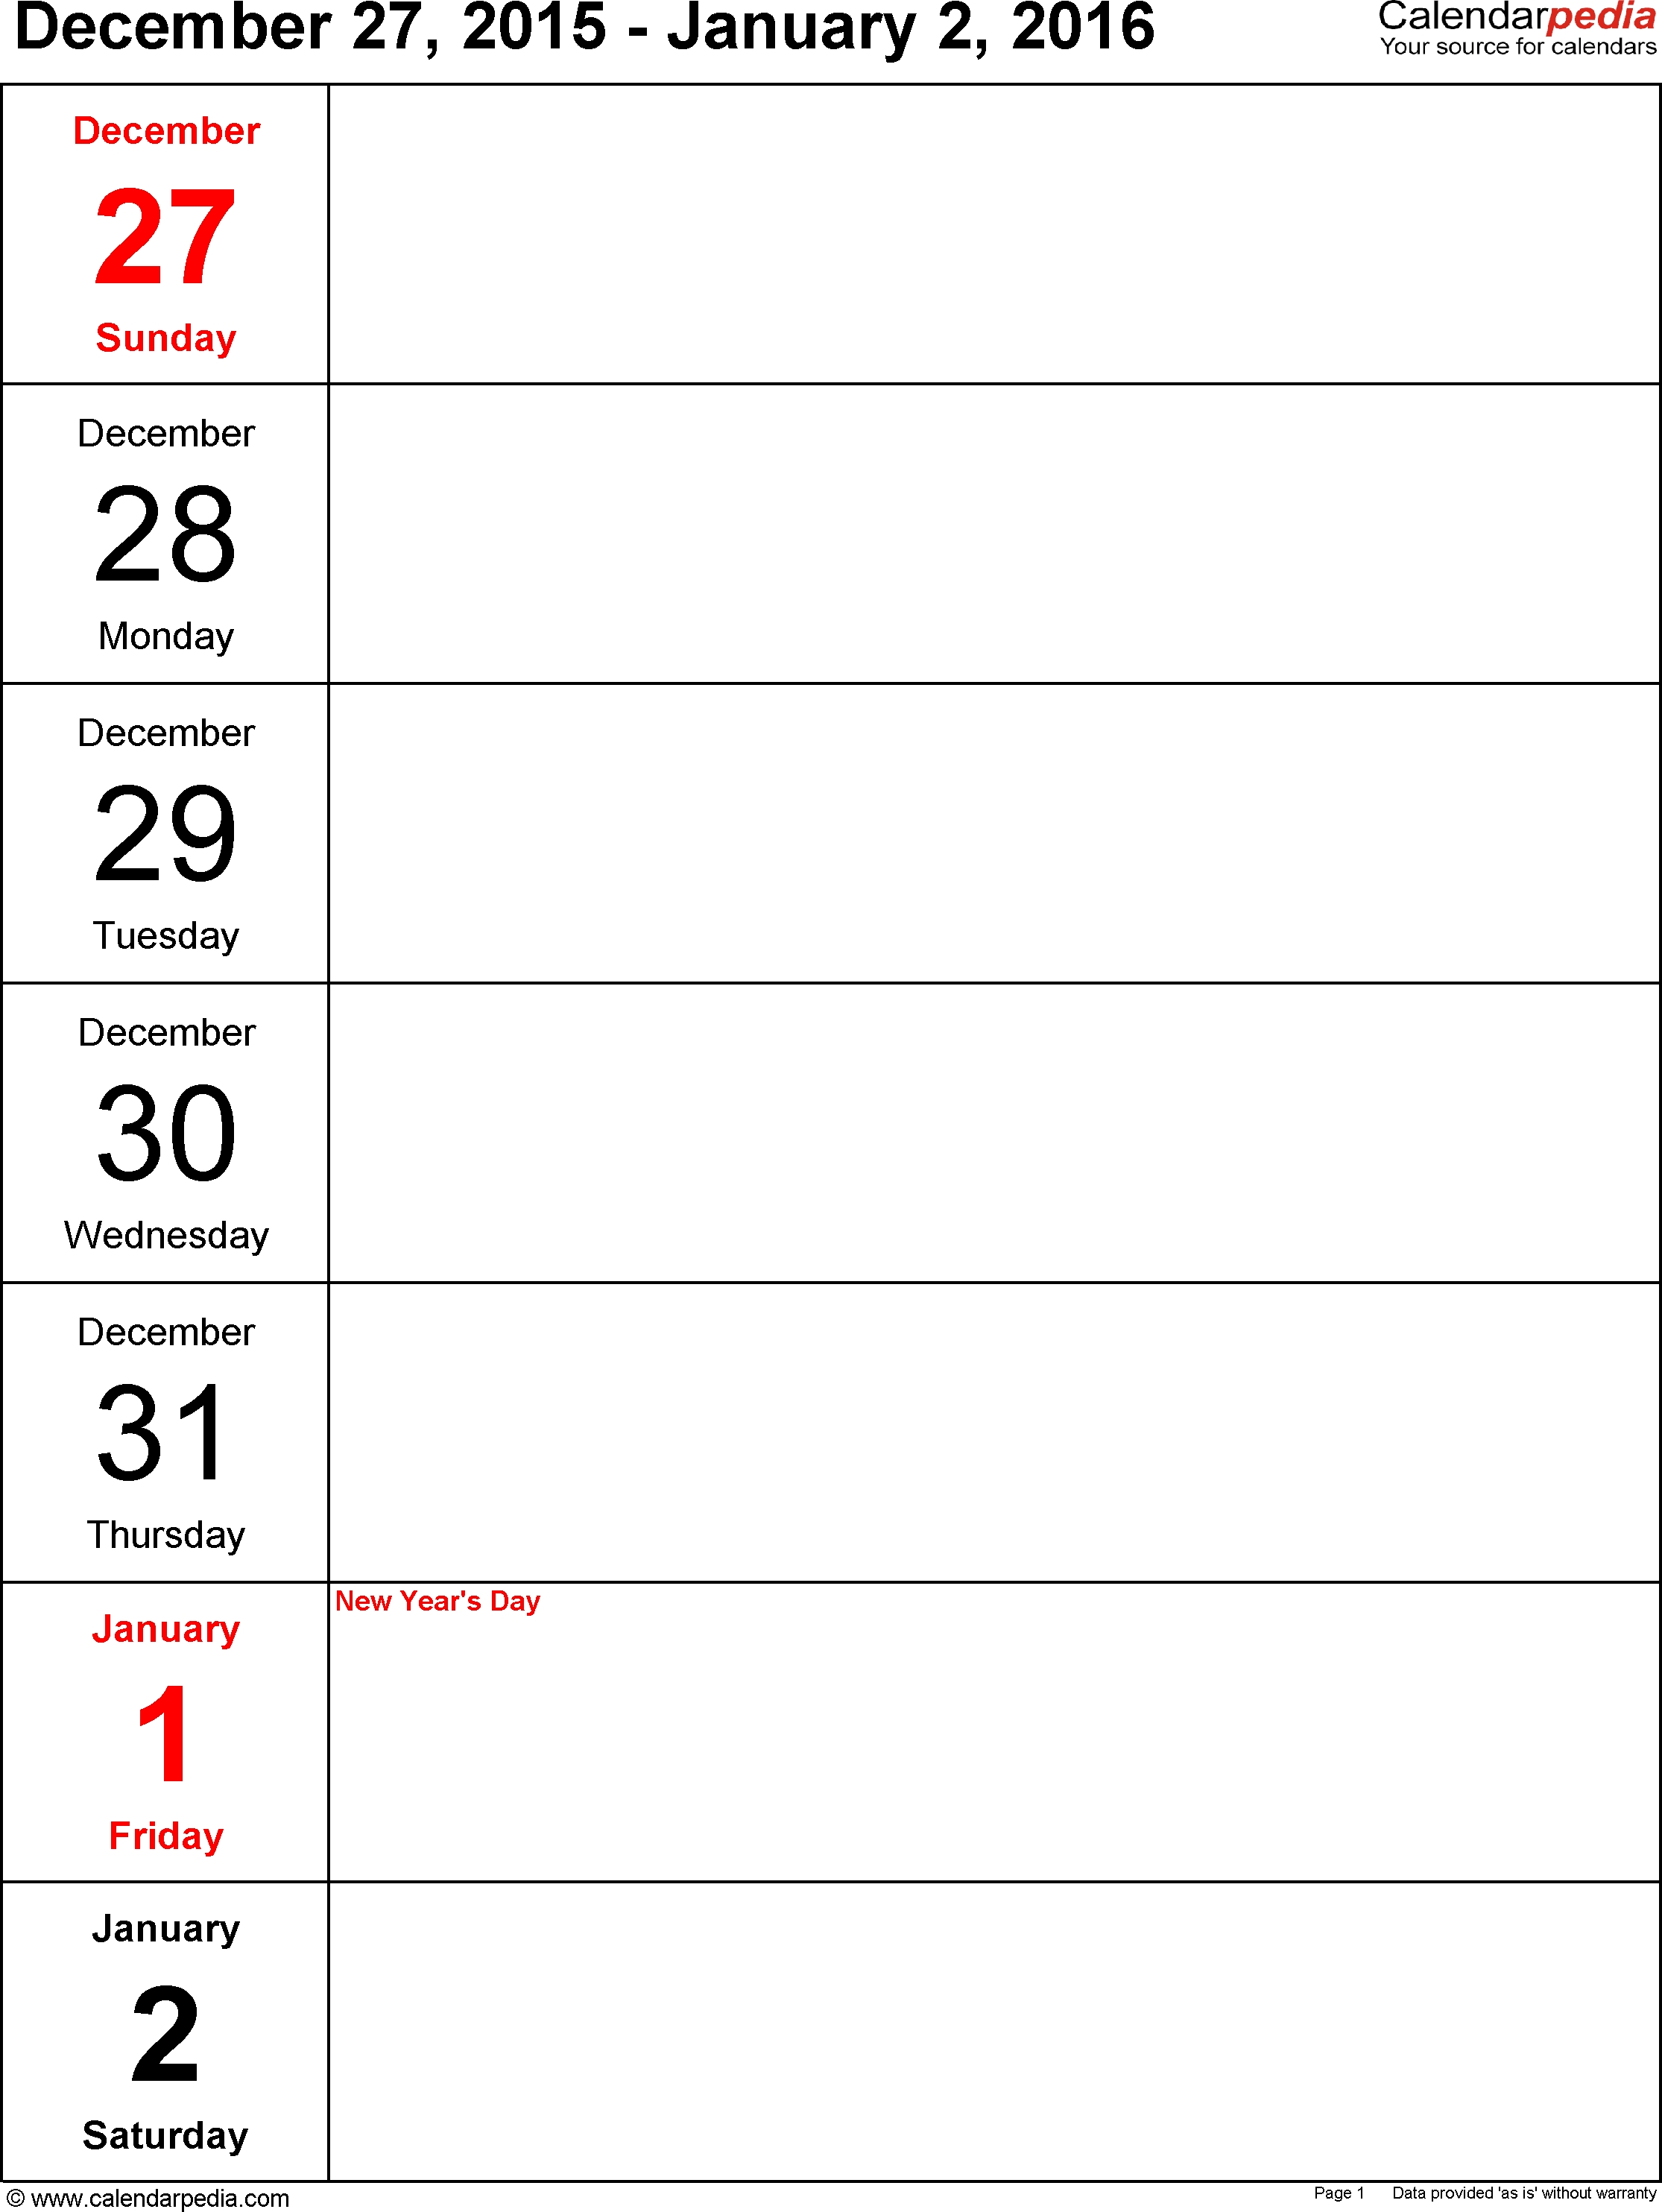 Weekly Calendar 2016 For Pdf - 12 Free Printable Templates  Printable Calendar Day By Day